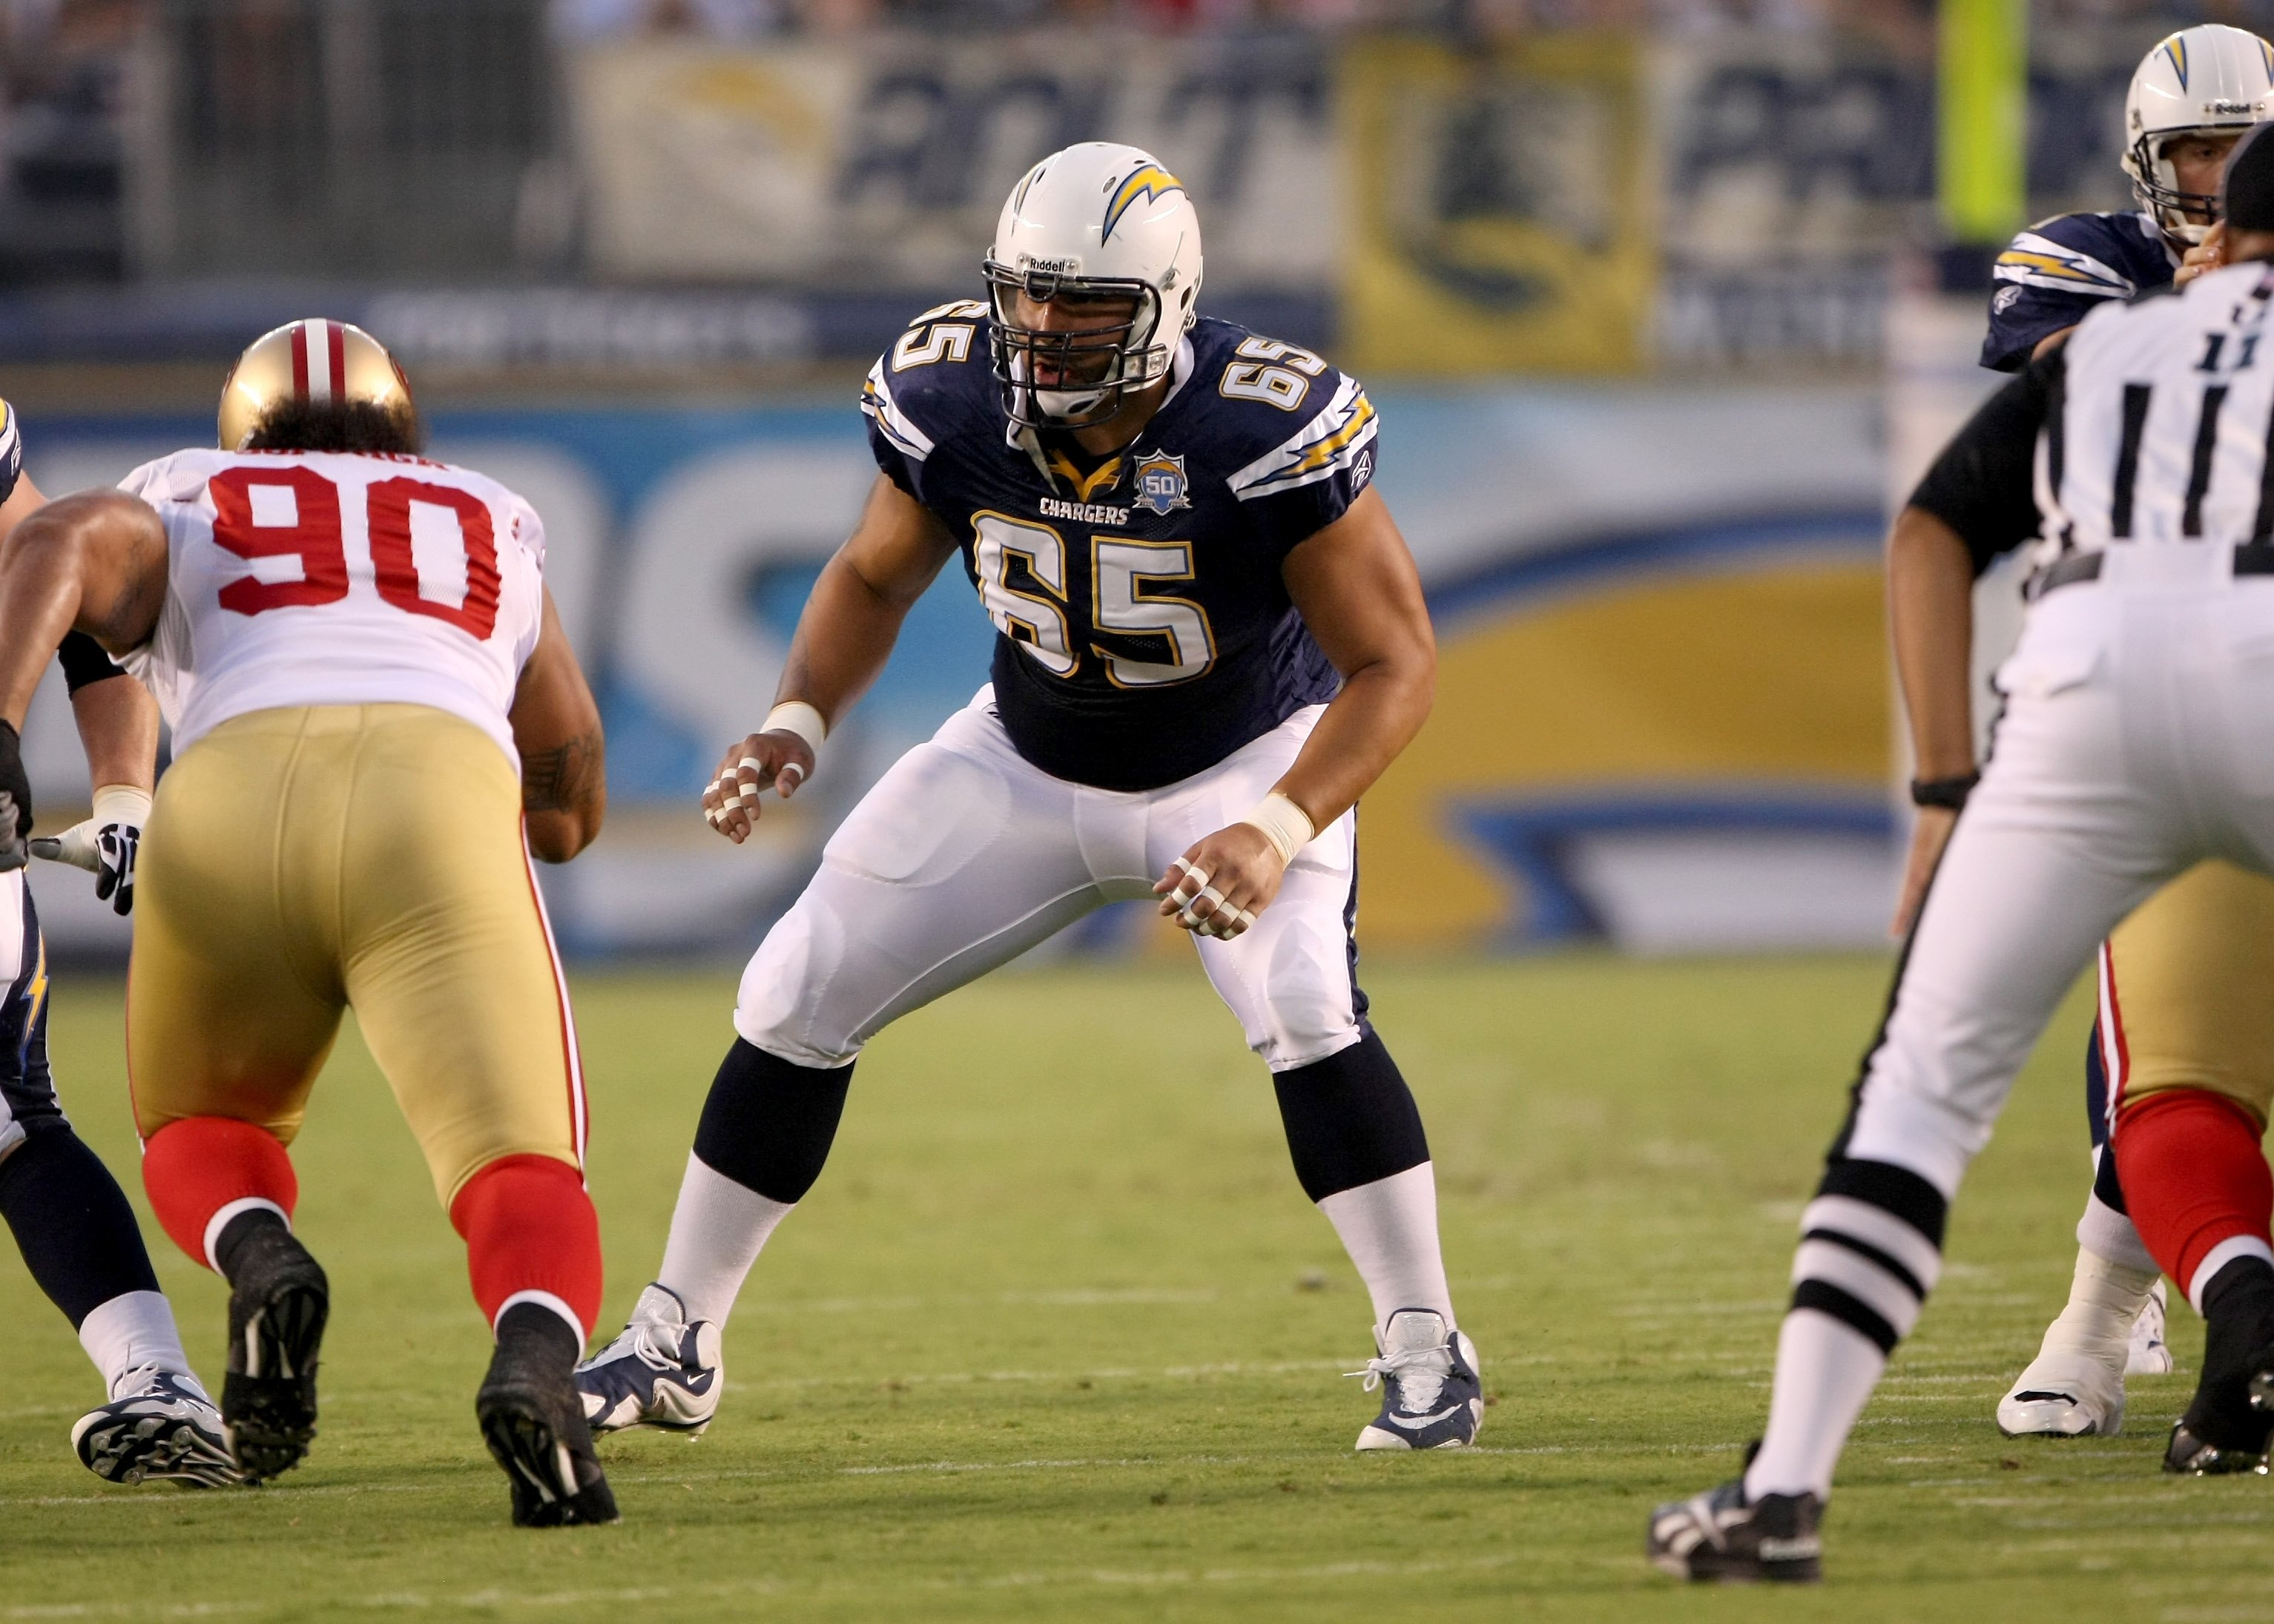 SAN DIEGO - SEPTEMBER 04:  Guard Louis Vasquez #65 of the San Diego Chargers blocks against the San Francisco 49ers on September 4, 2009 at Qualcomm Stadium in San Diego, California.   The Chrgers won 26-7.  (Photo by Stephen Dunn/Getty Images)